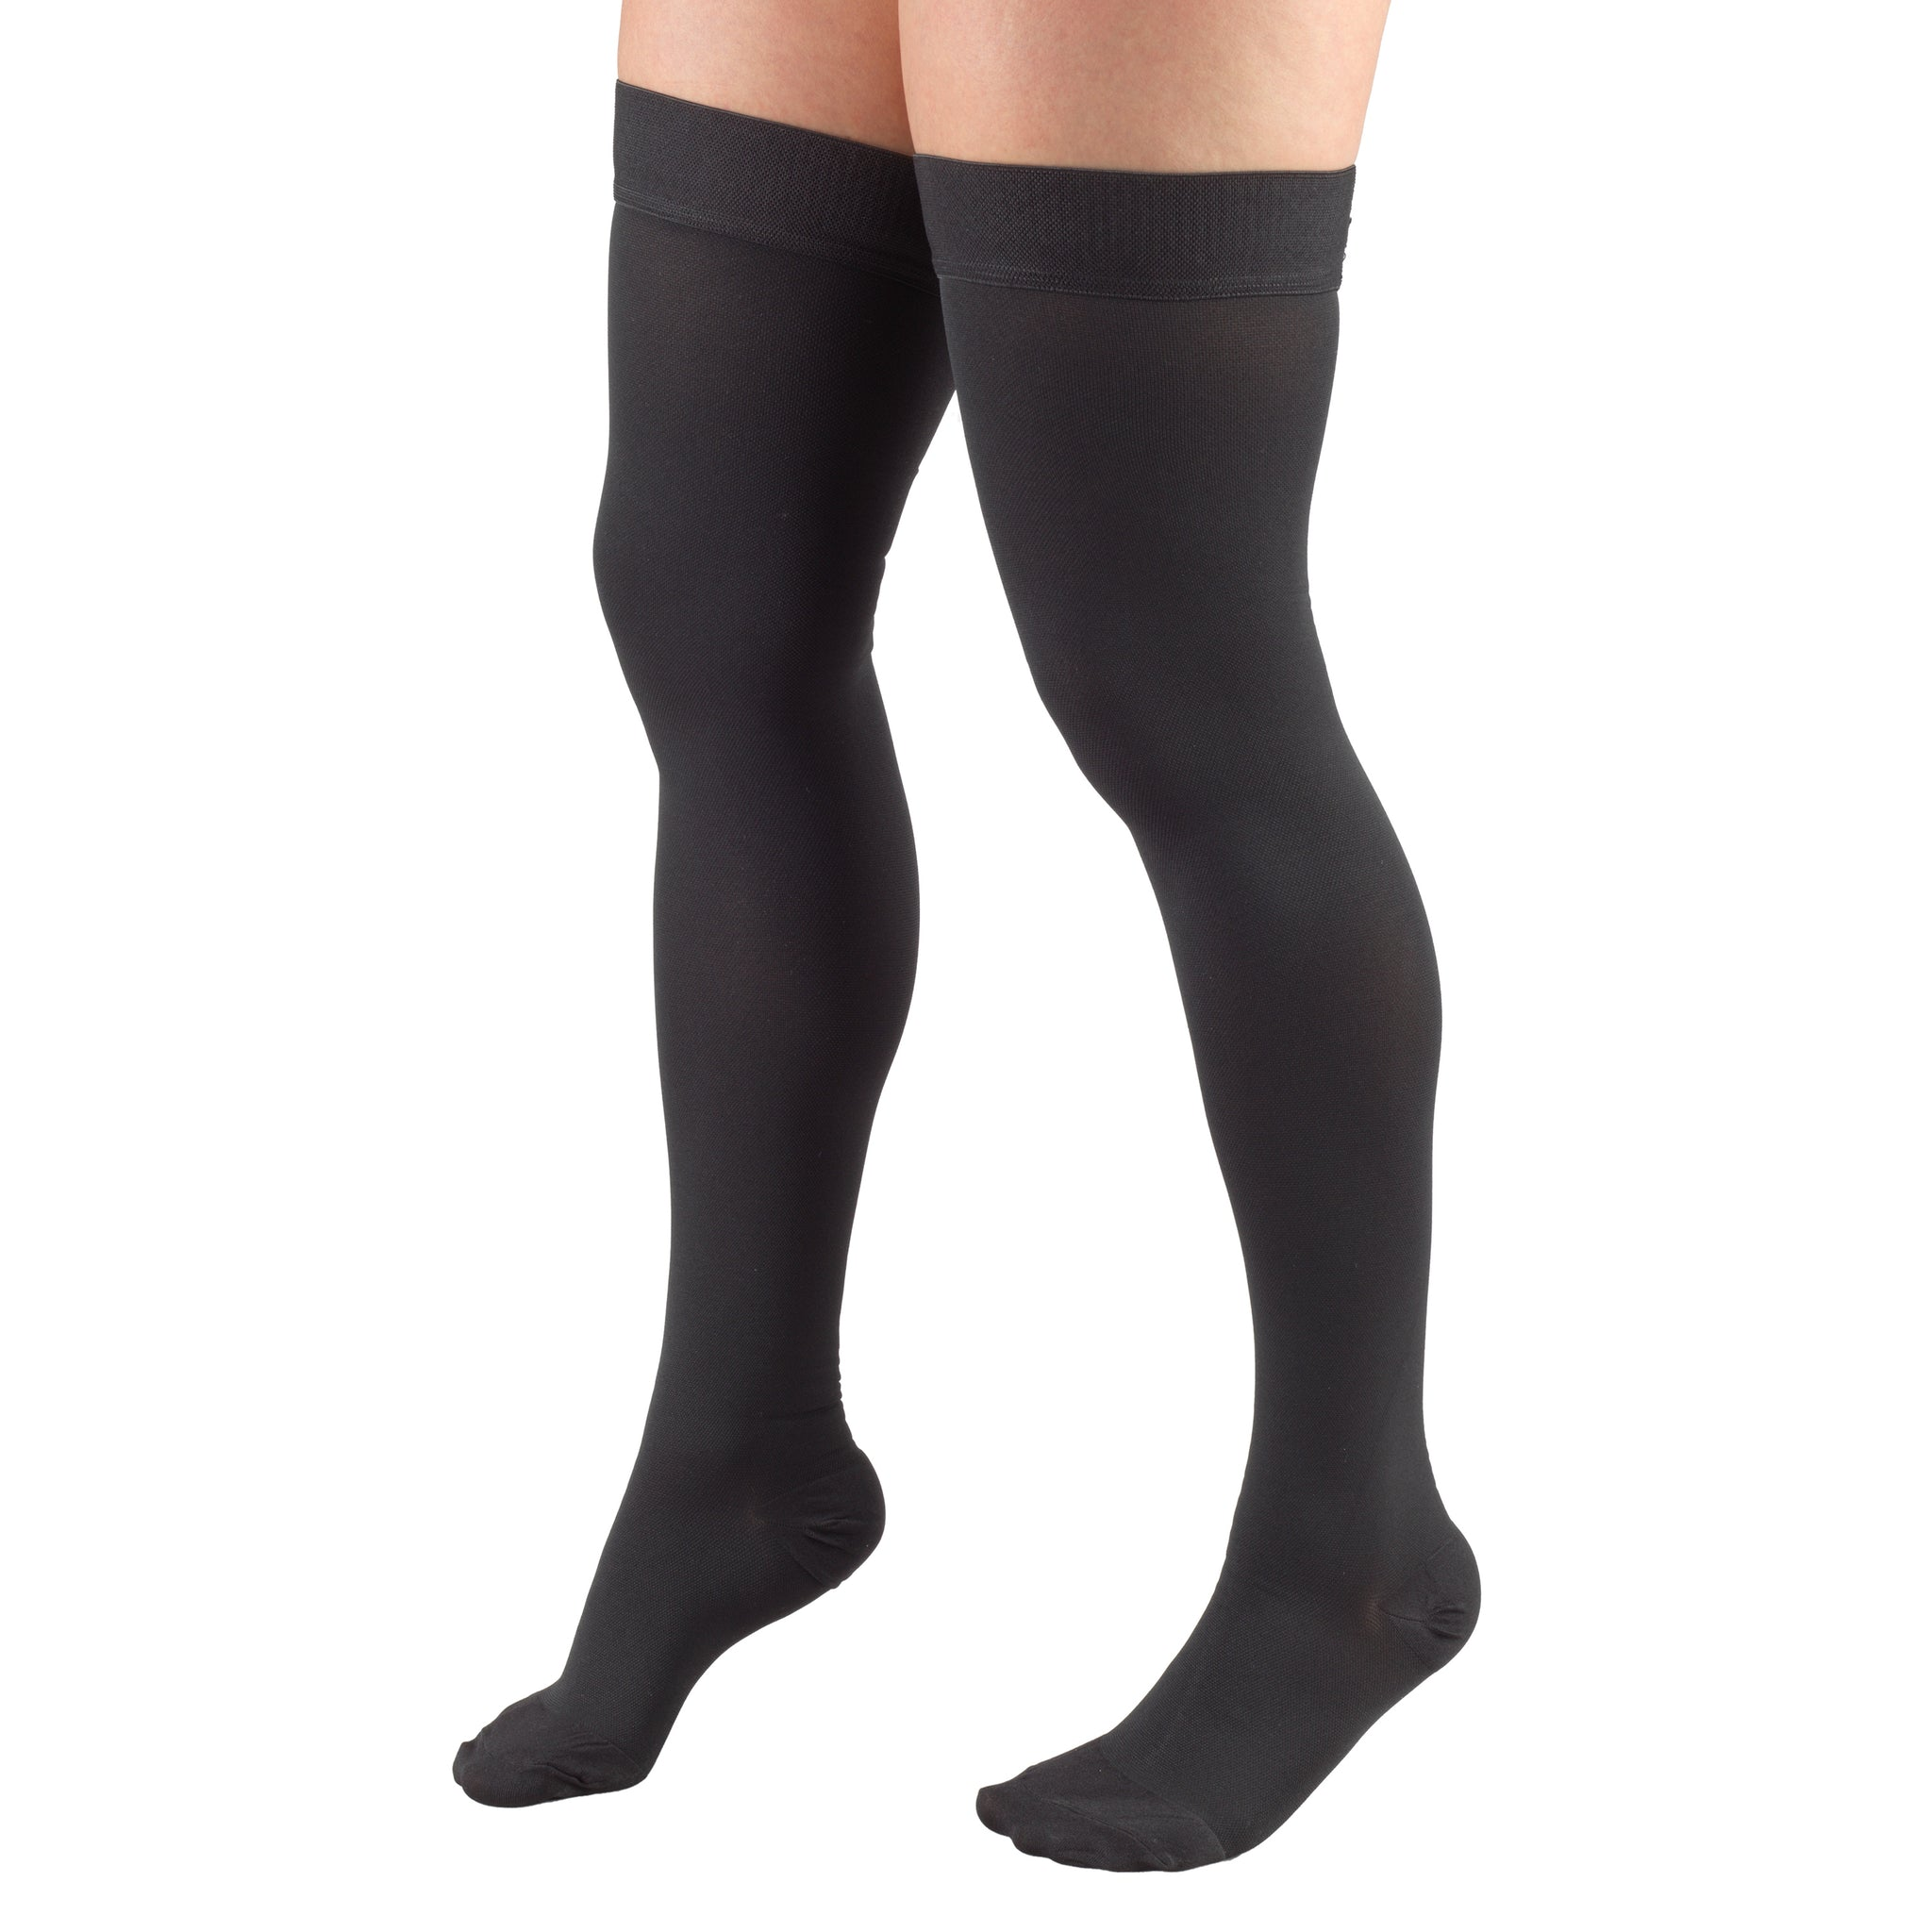 8868 THIGH HIGH CLOSED TOE CHARCOAL STOCKINGS